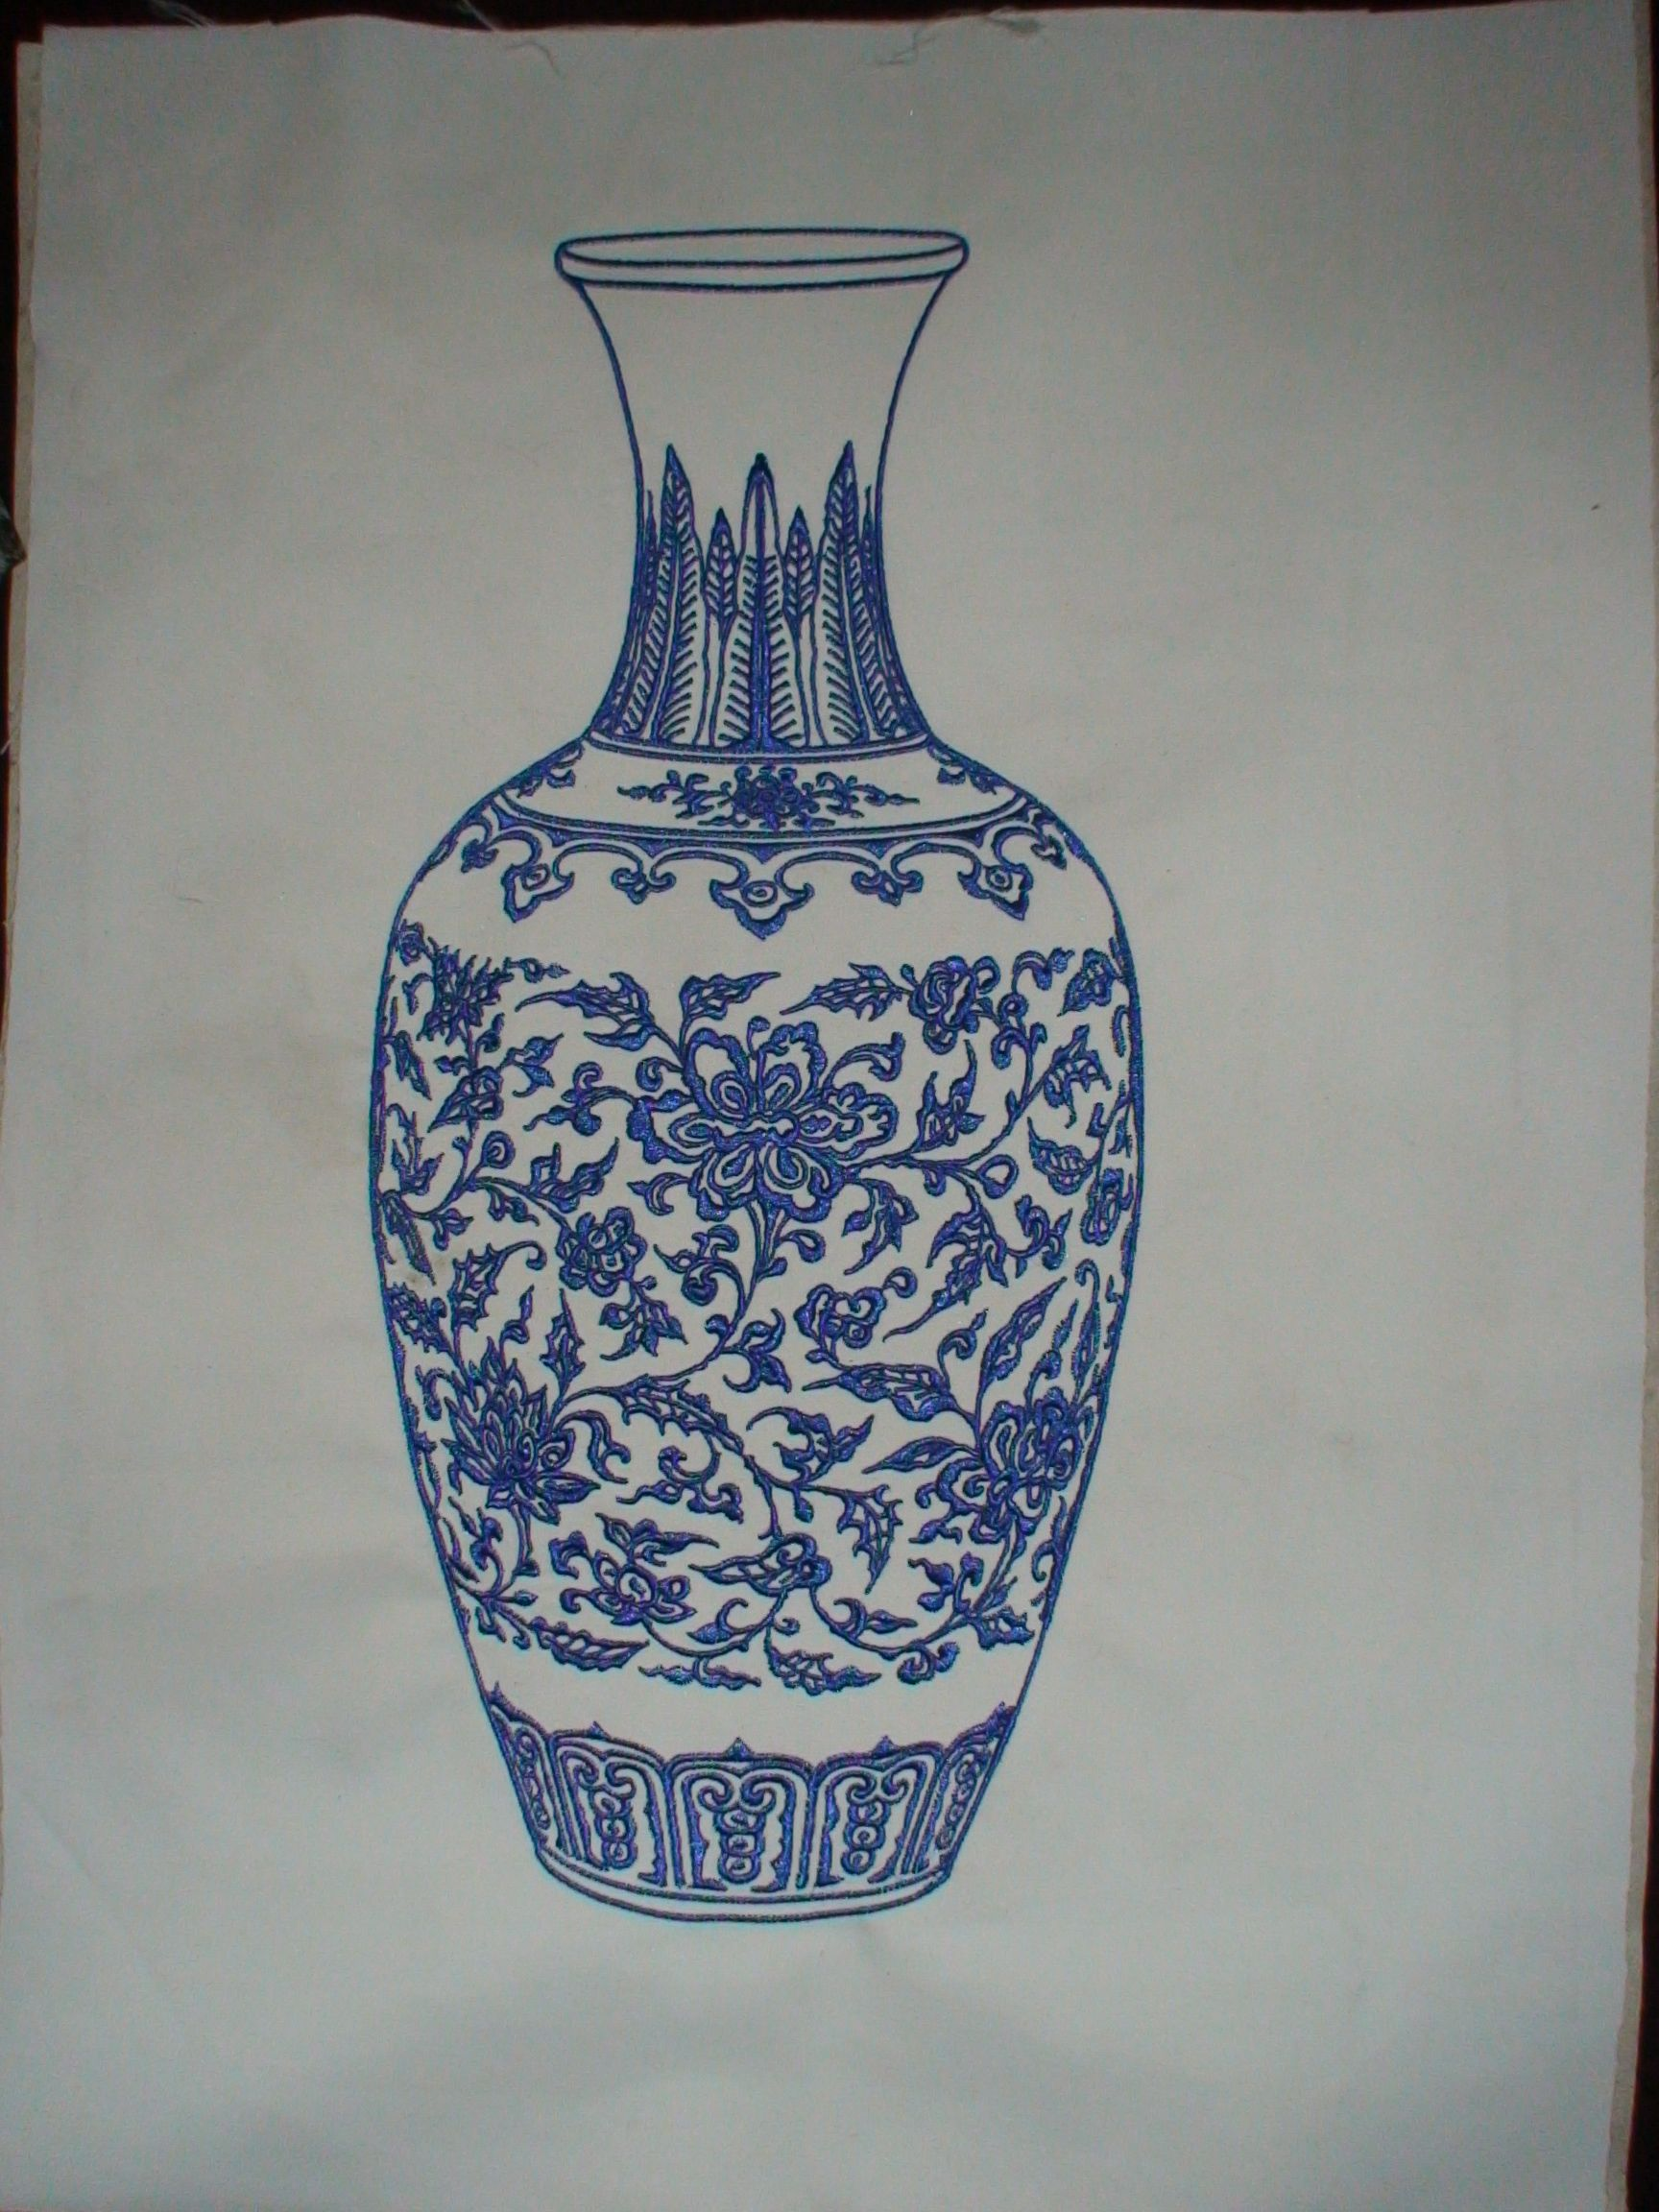 blue and white porcelain embroidery artwork made by Richpeace